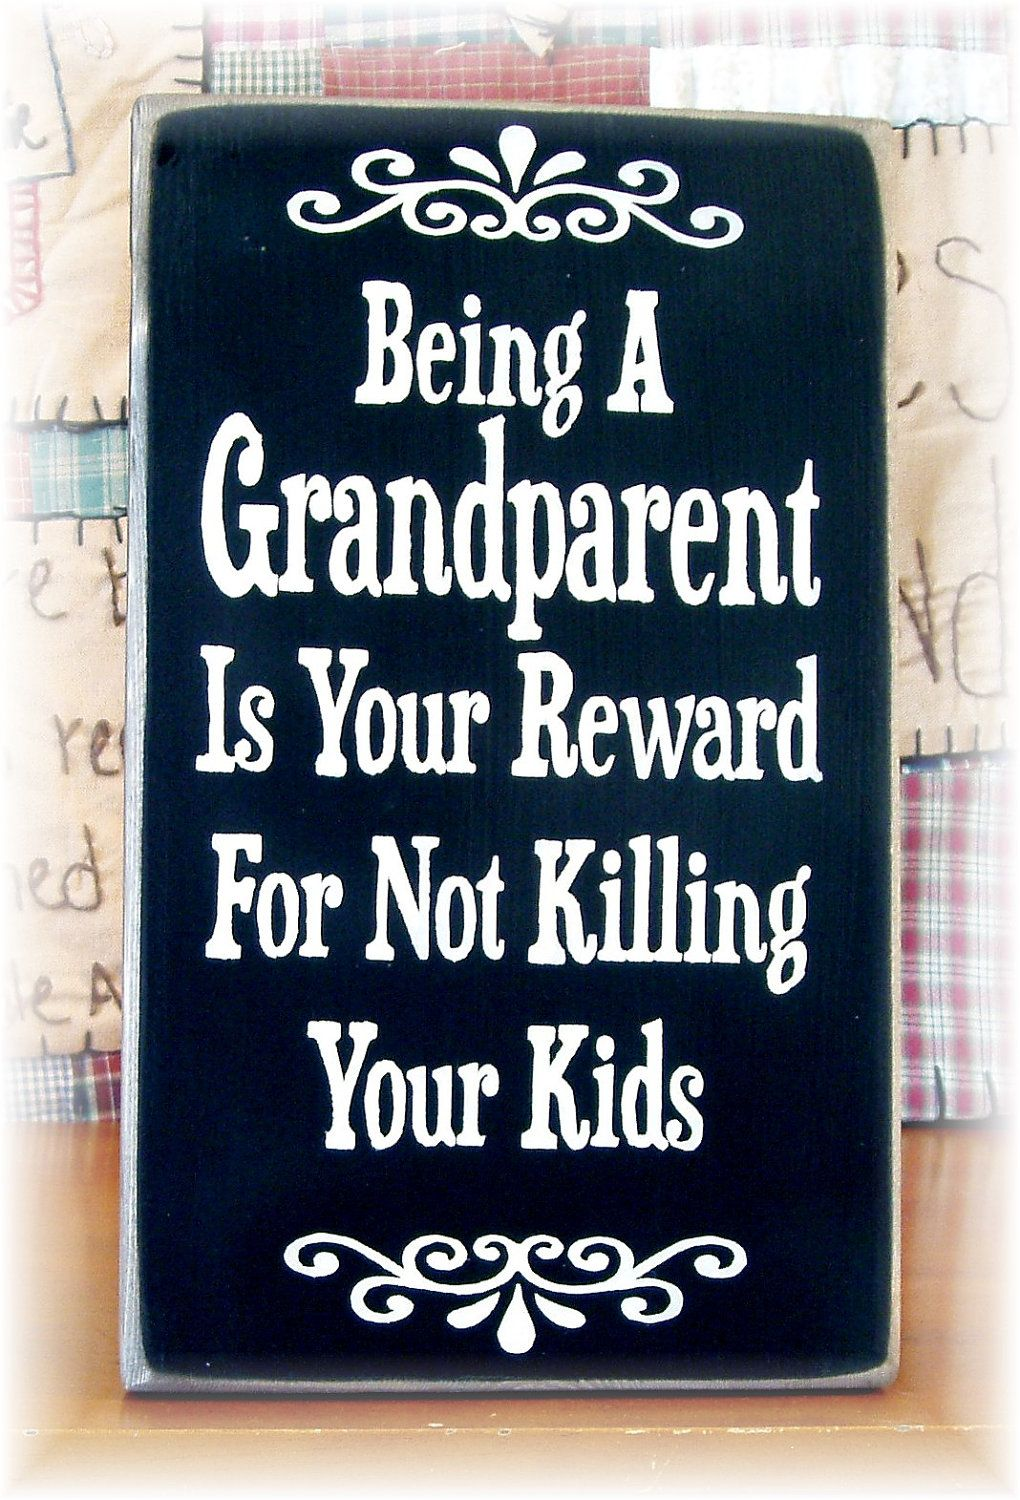 Being A Grandparent Is Your Reward For Not Killing Your Kids